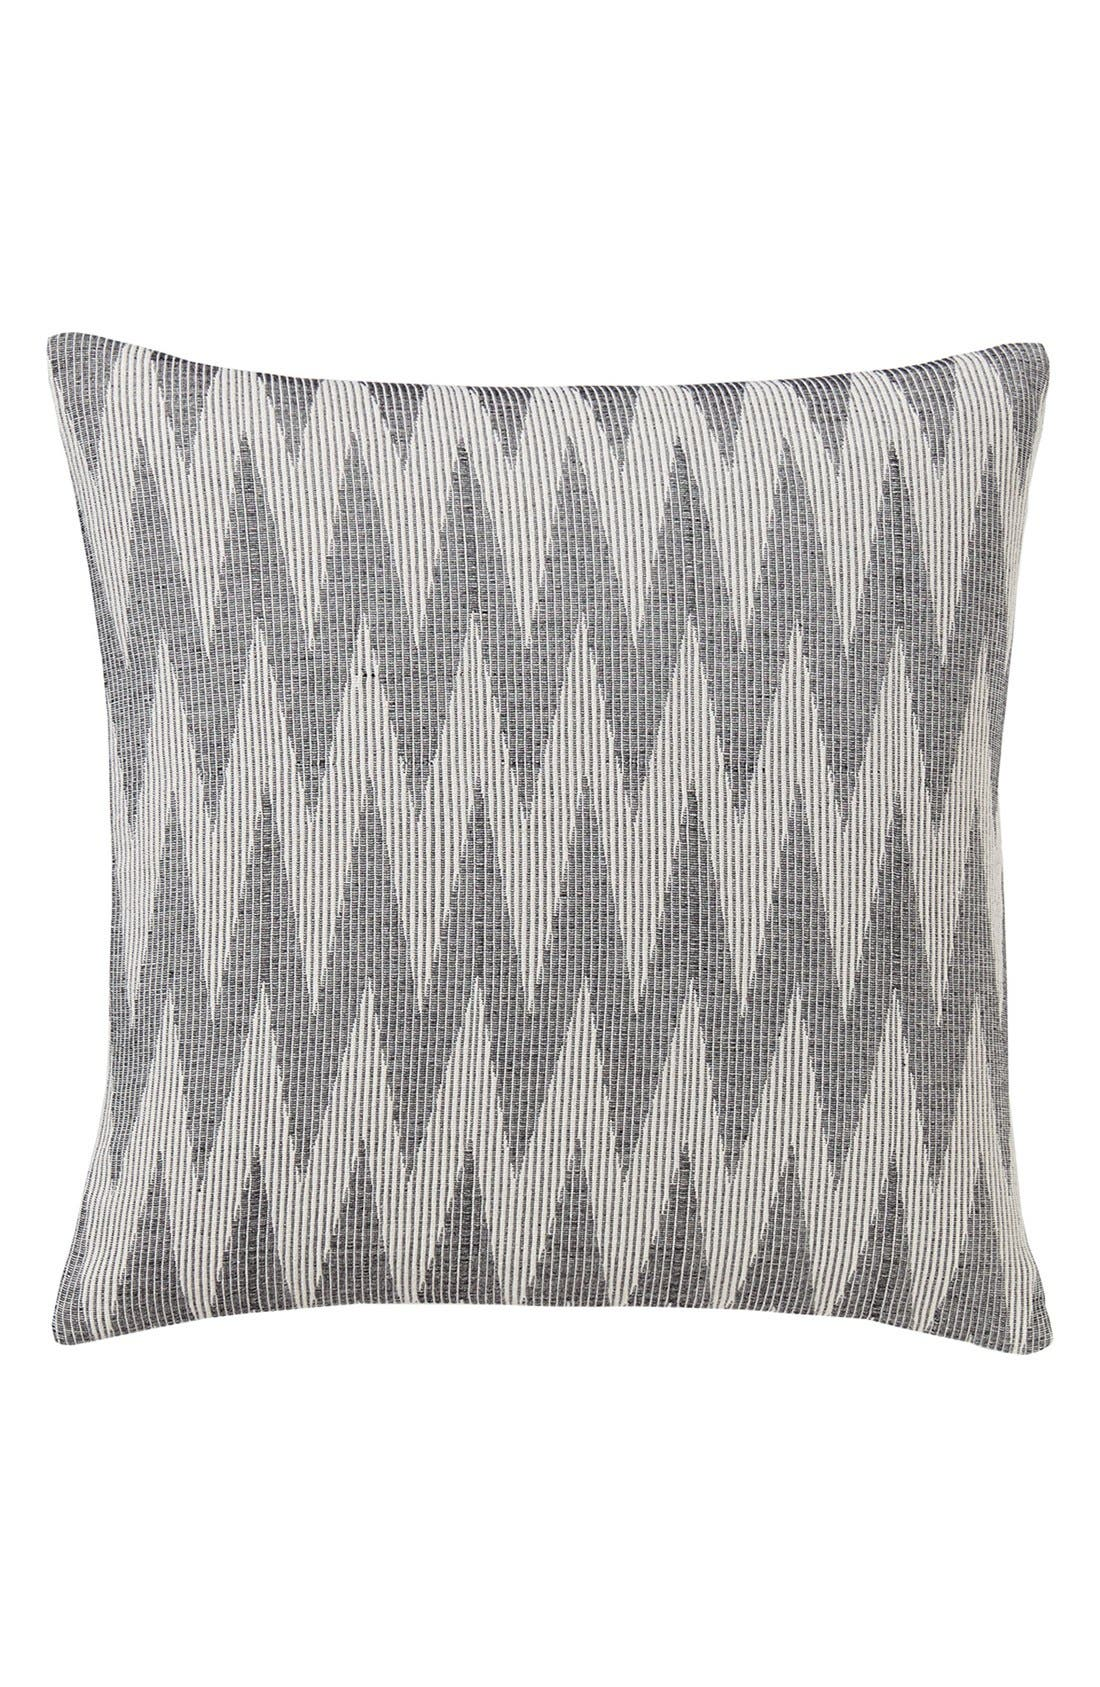 DwellStudio 'Anya' Decorative Pillow